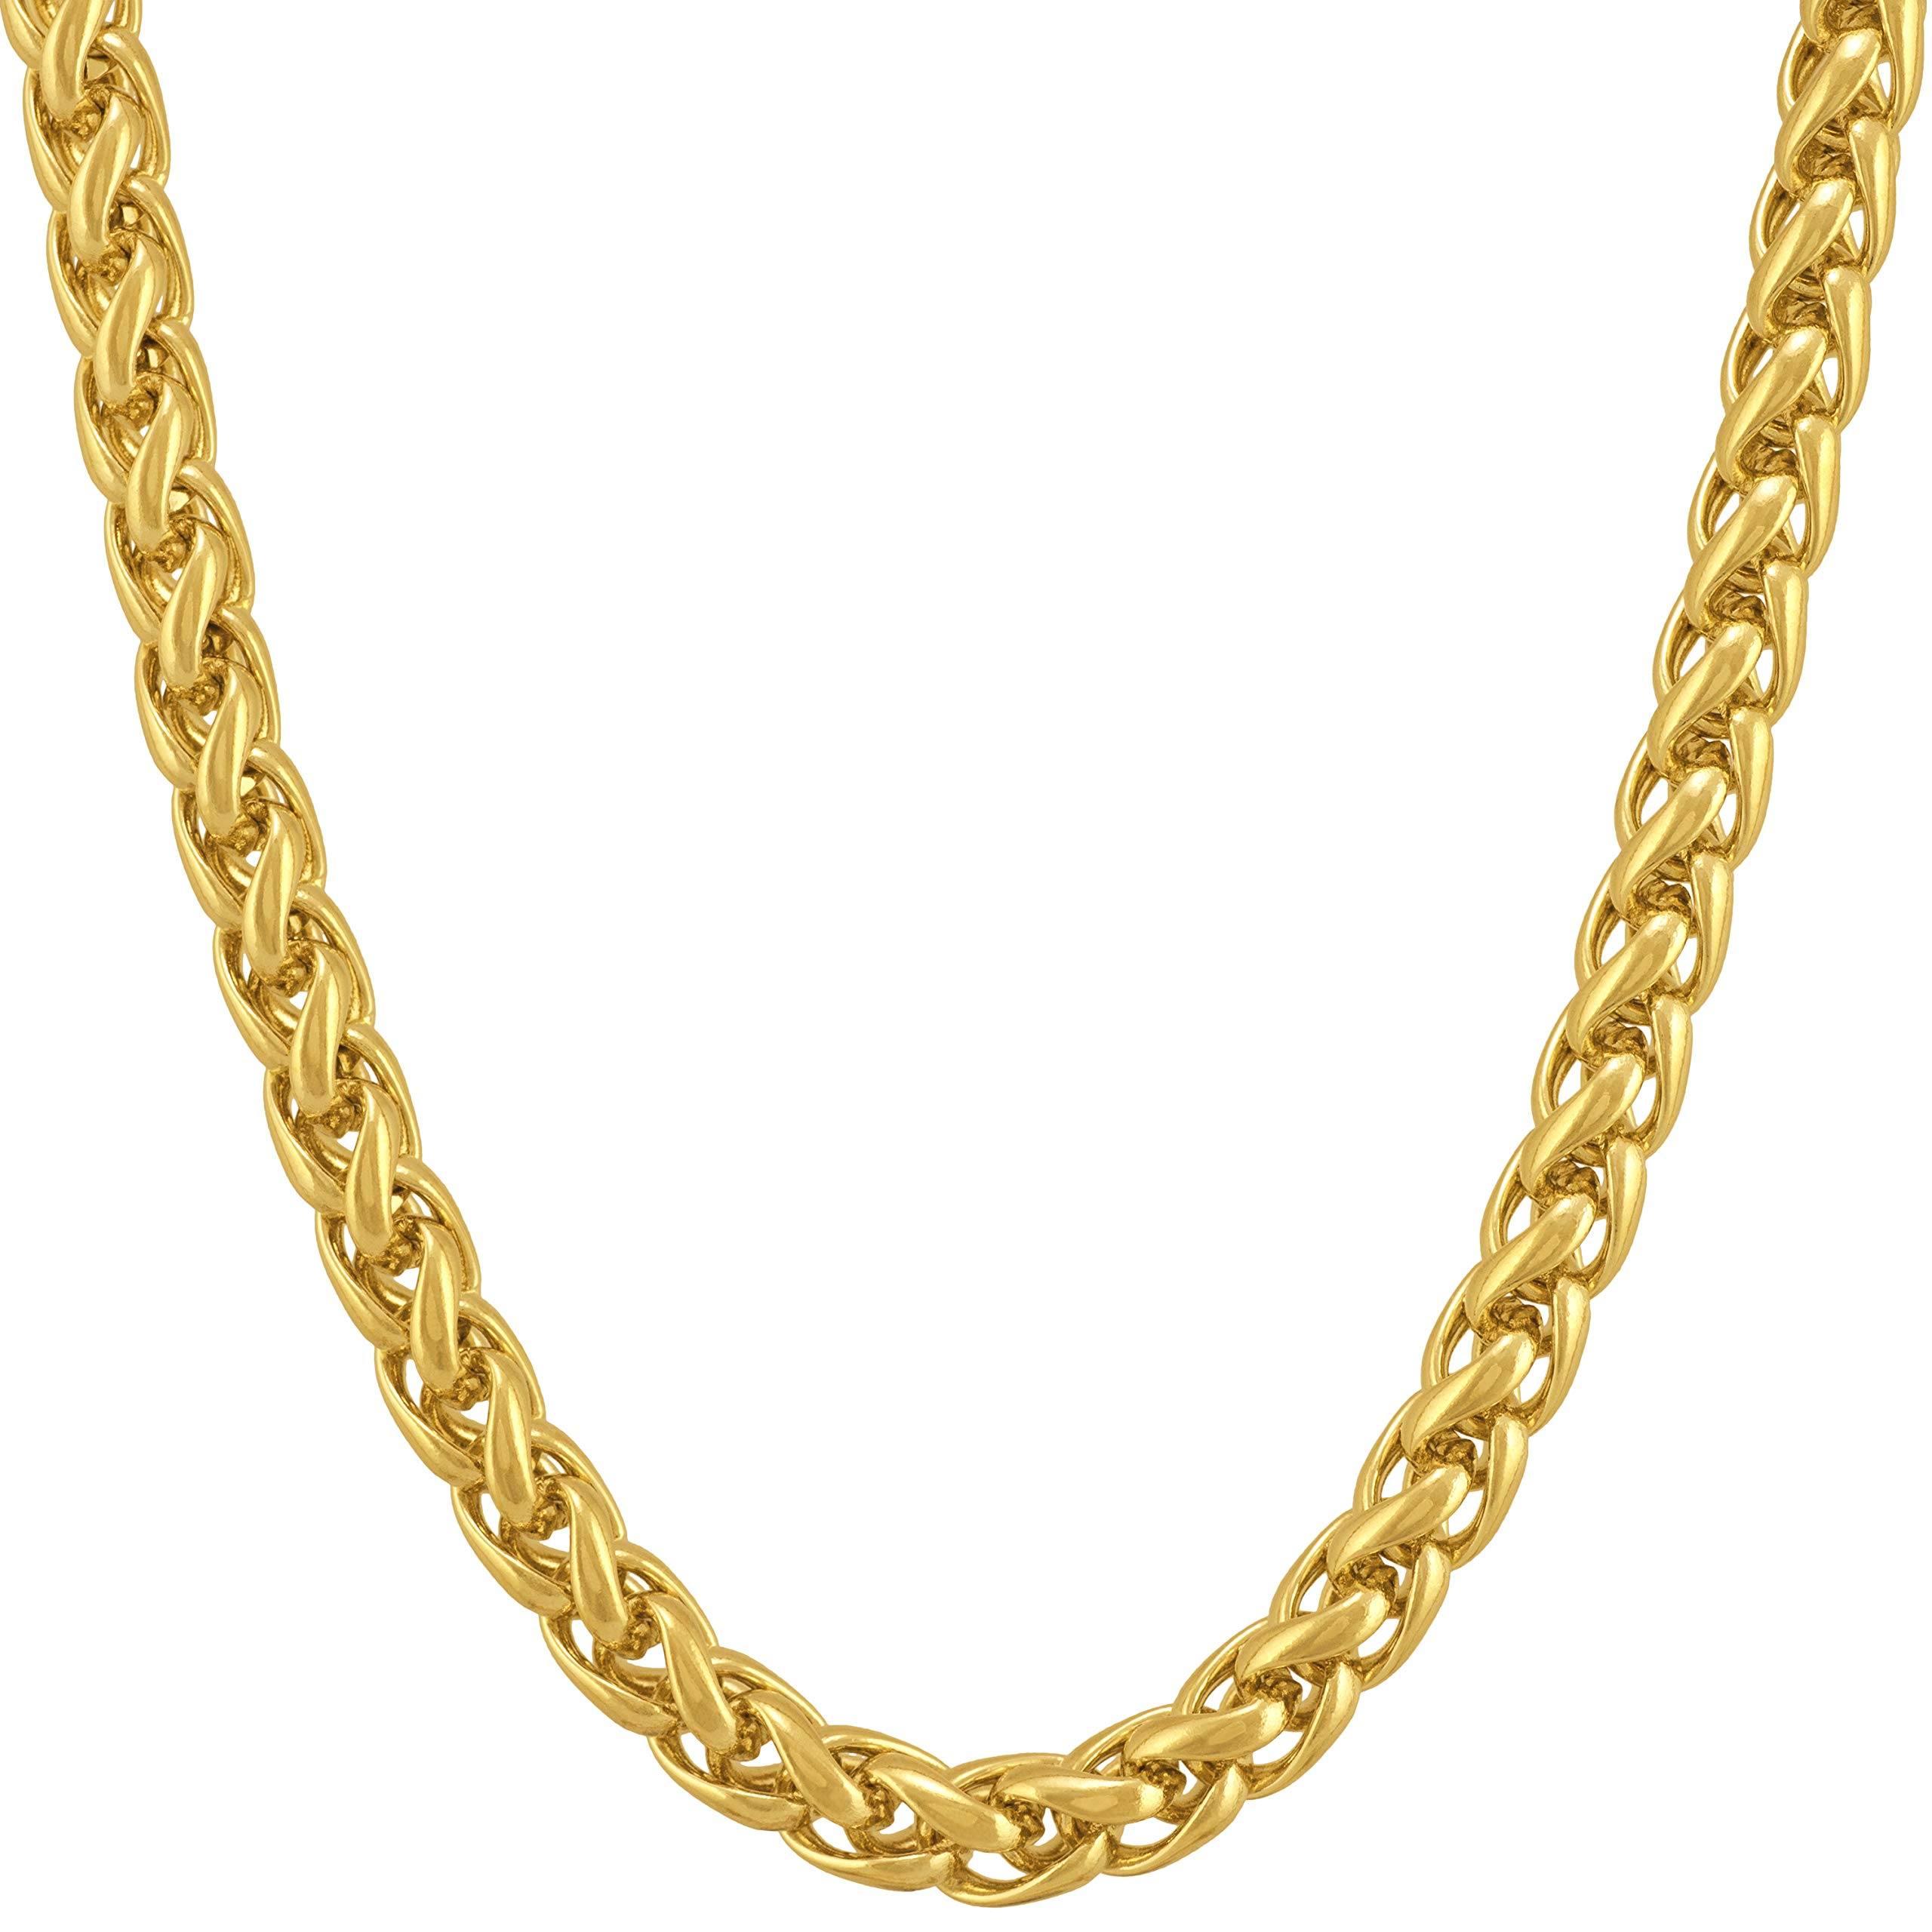 LIFETIME JEWELRY 5mm Weave Chain Necklace for Women and Men 24k Real Gold Plated with Free Lifetime Replacement Guarantee